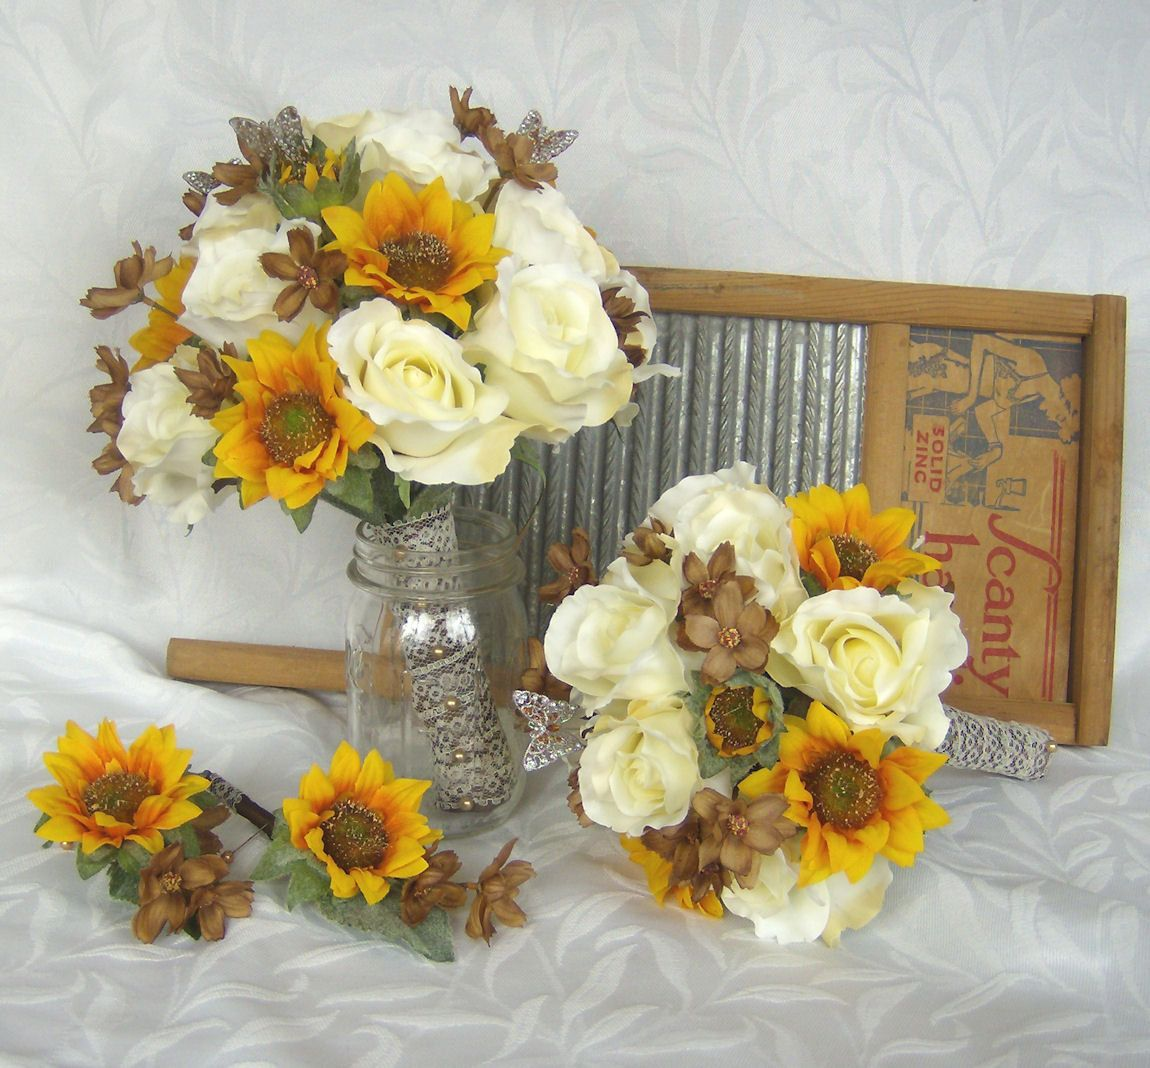 Bridesmaid Bouquets Sunflowers : Sunflower bridal bouquet roses wedding